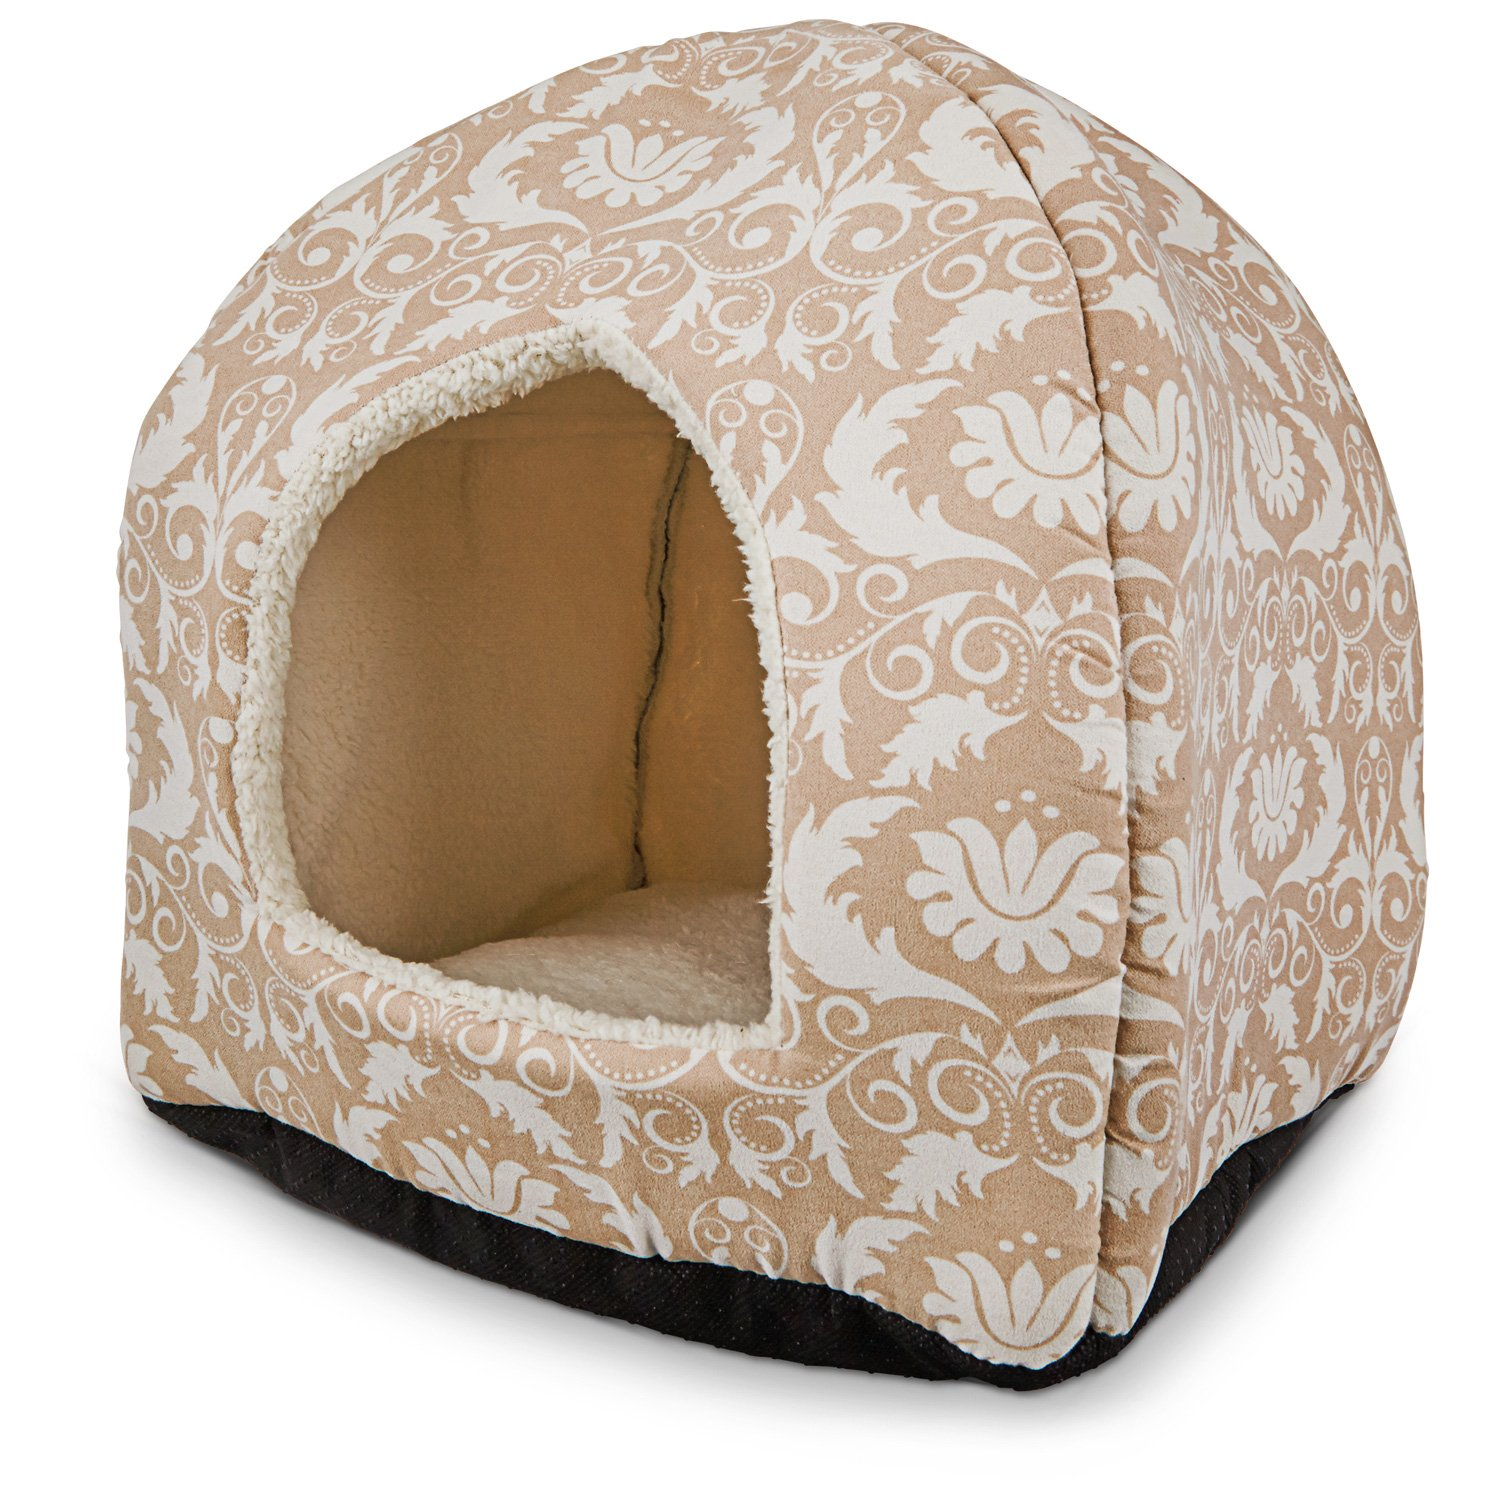 Petco Restful Snuggler Pyramid Cat Bed in Brown